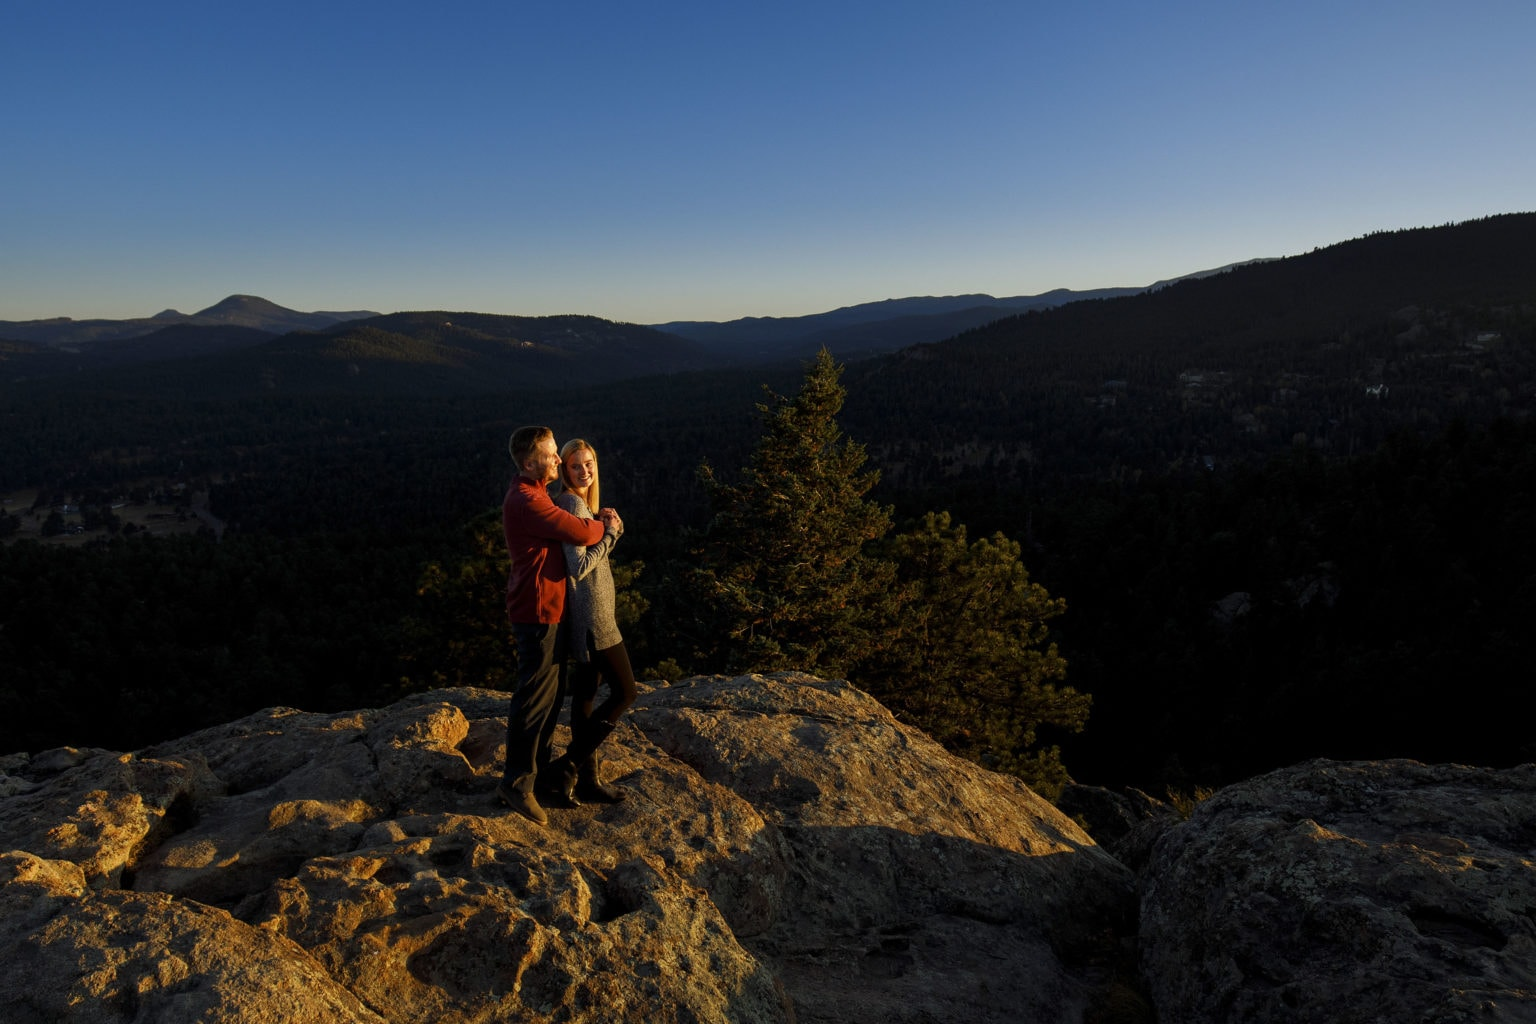 Stefan and Jennifer share a moment togather atop Brother's Lookout as the sun sets during their fall engagement session at Alderfer Three Sister's Park